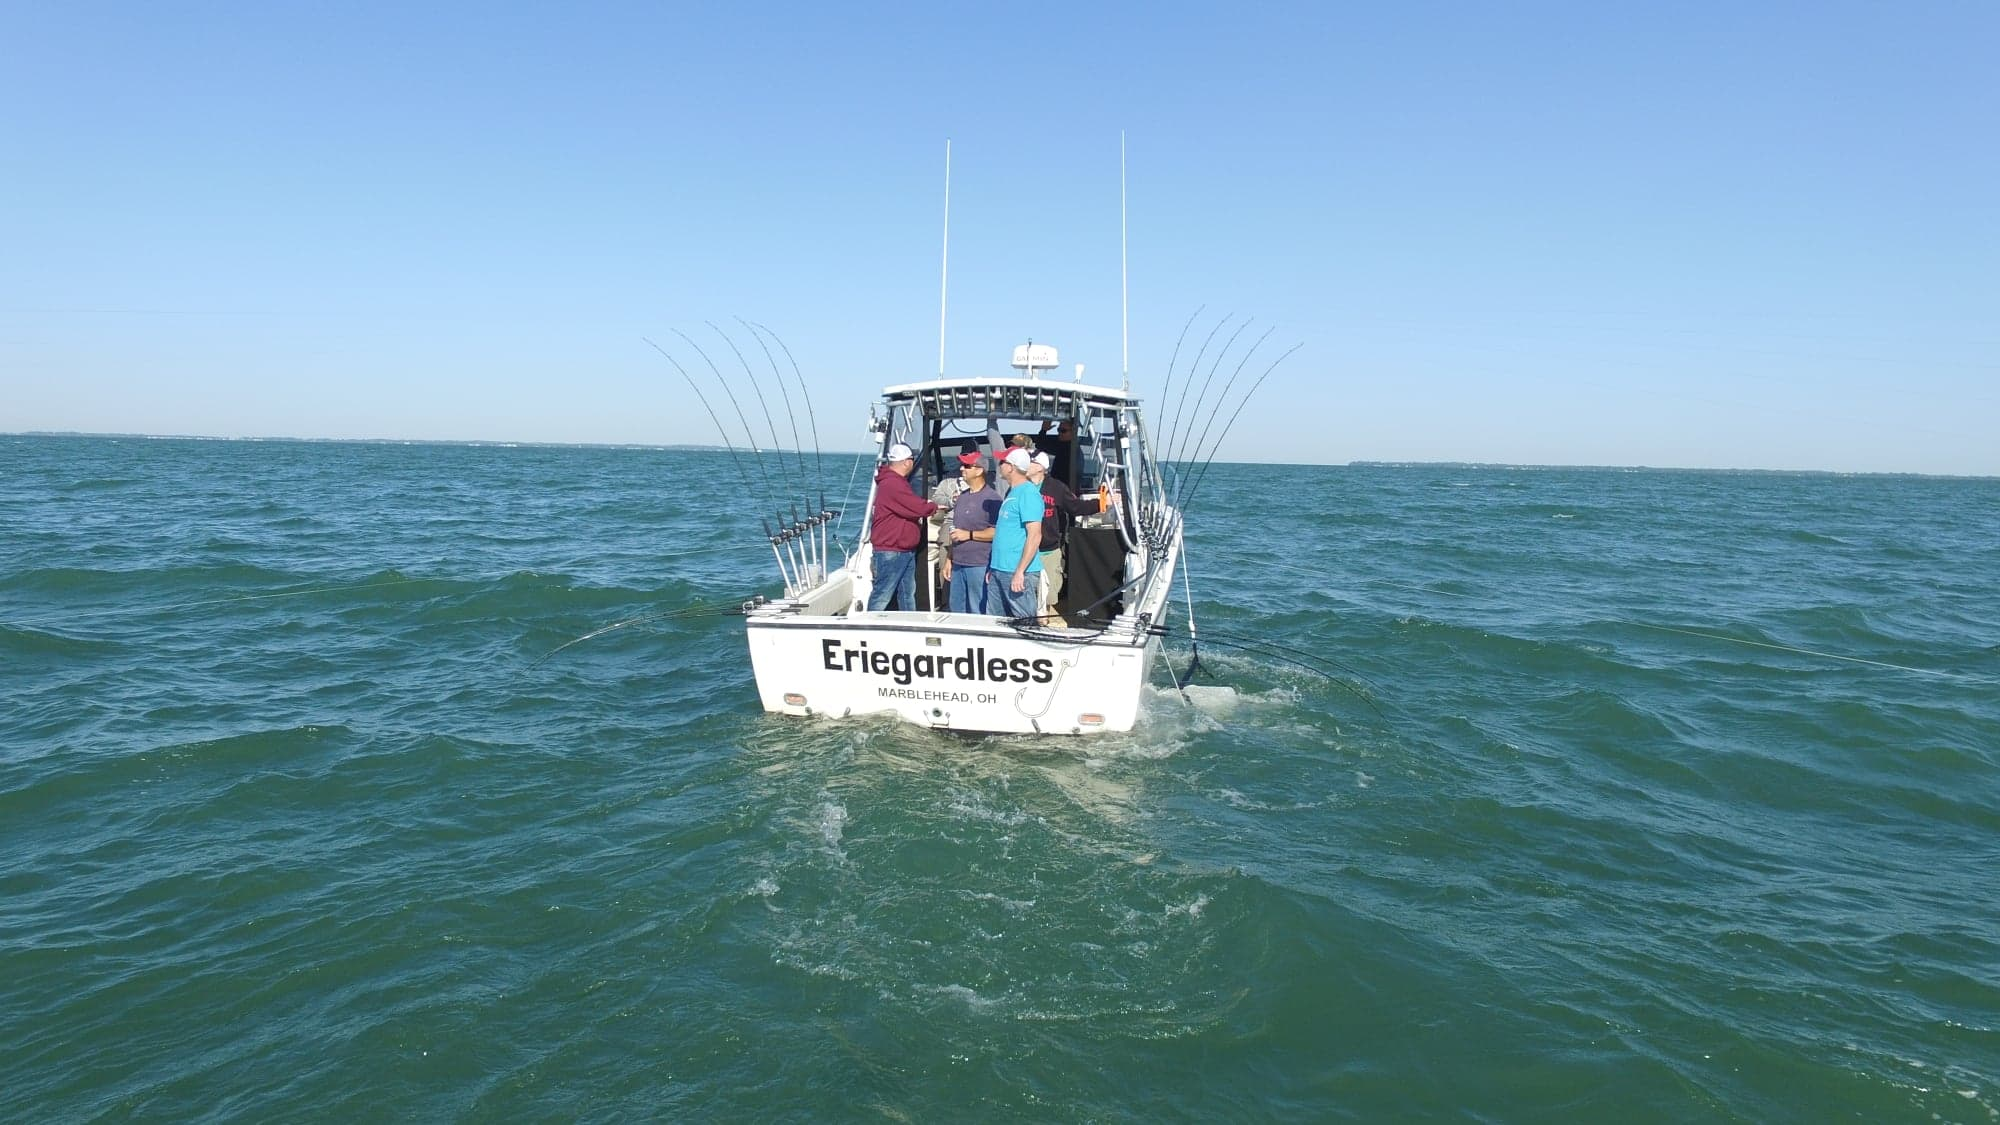 lake-erie-fishing-charter-up-to-4-people-15706503621672984029